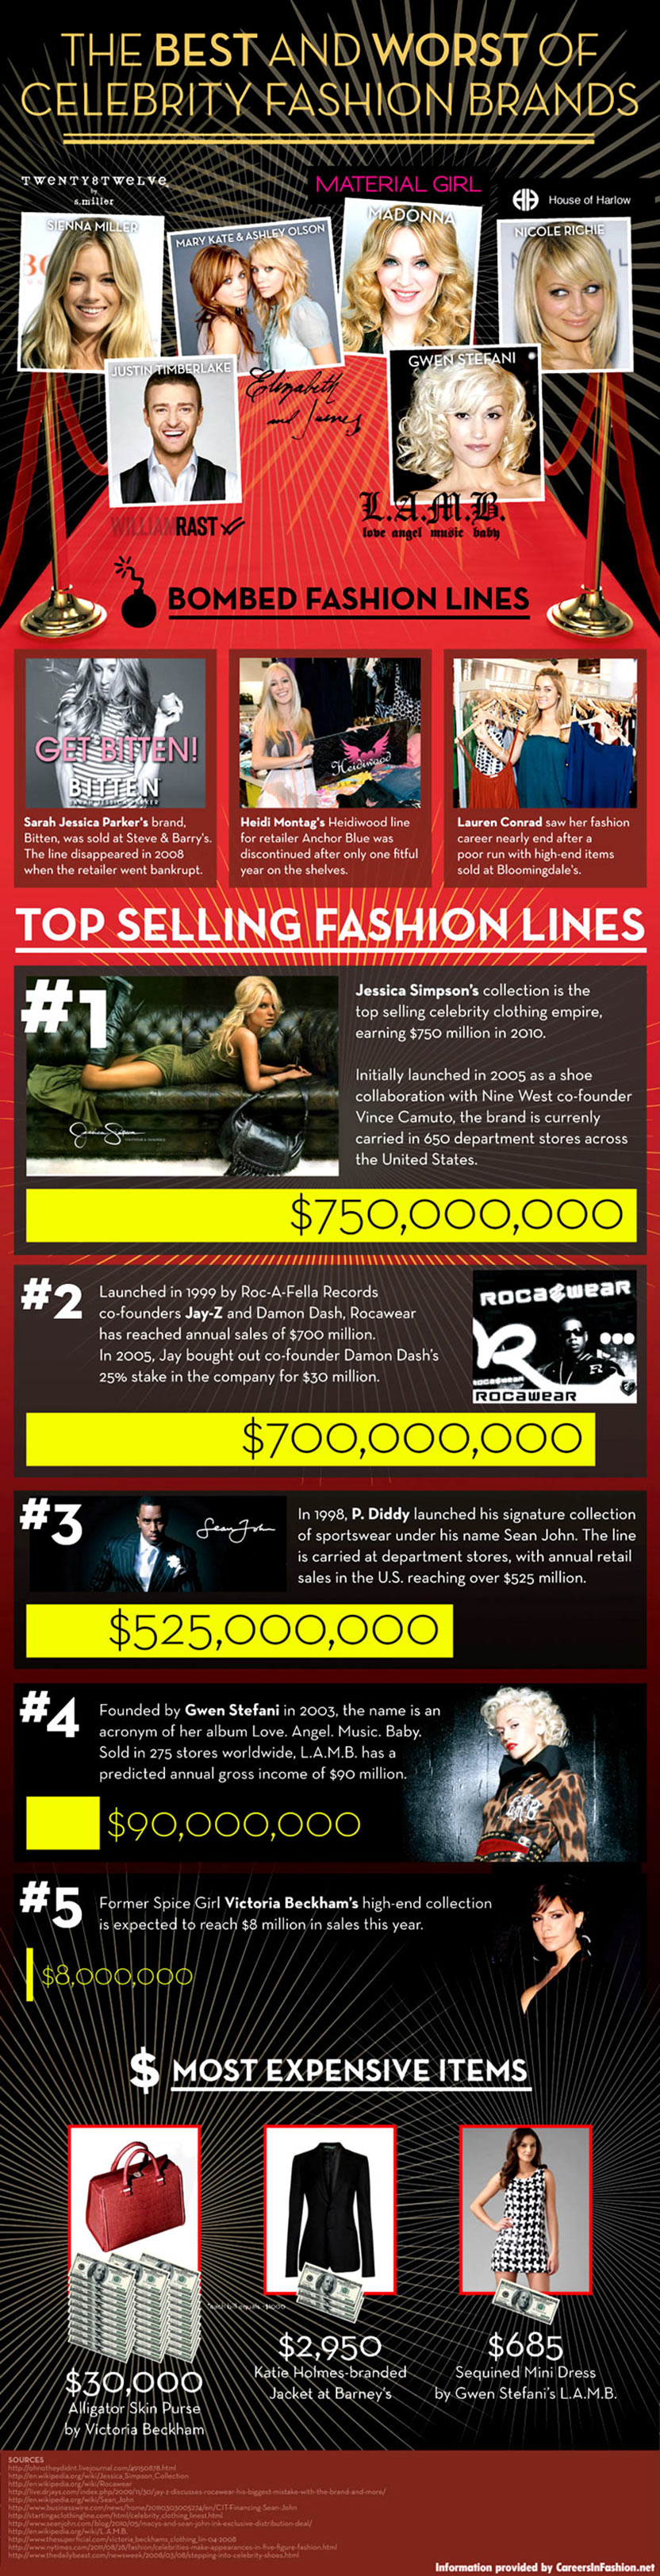 The Best and Worst of Celebrity Fashion Brands Infographic